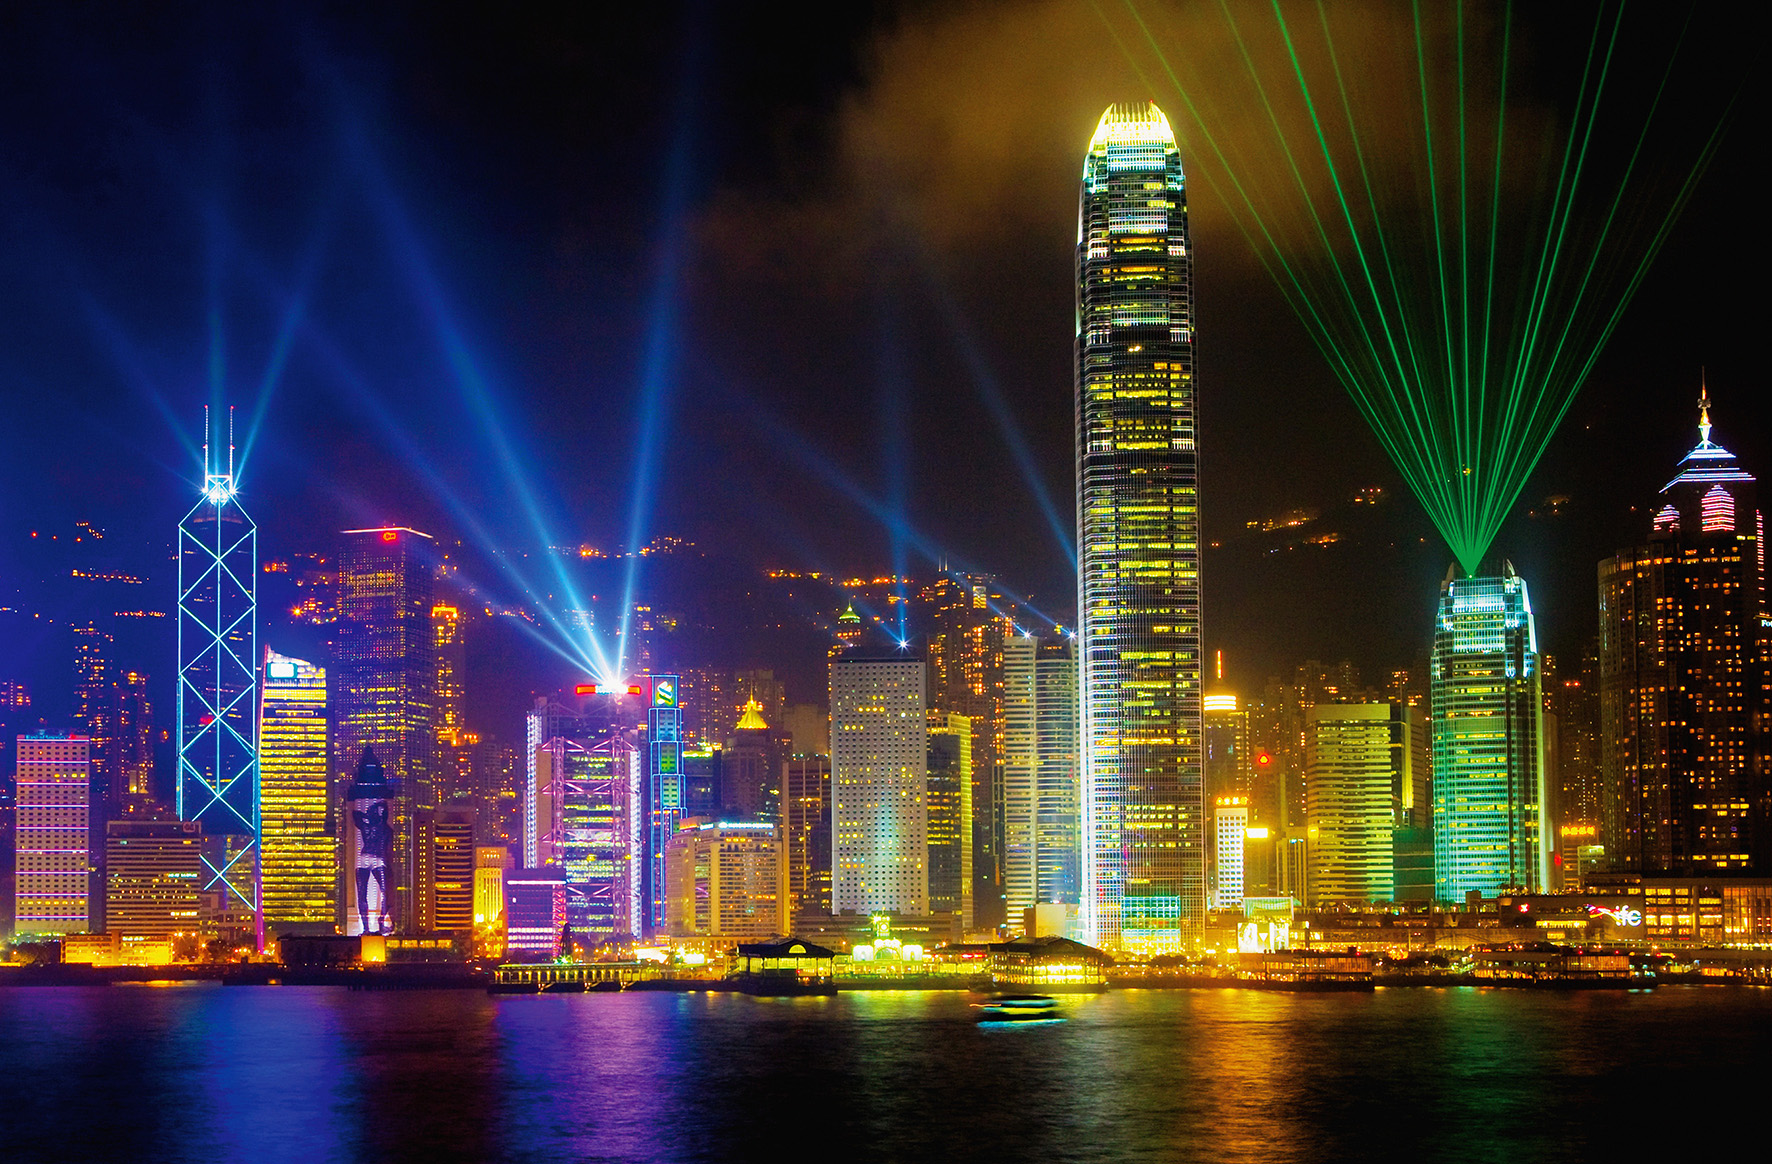 fototapete victoria harbour 175x115cm giant art poster hong kong skyline nacht ebay. Black Bedroom Furniture Sets. Home Design Ideas